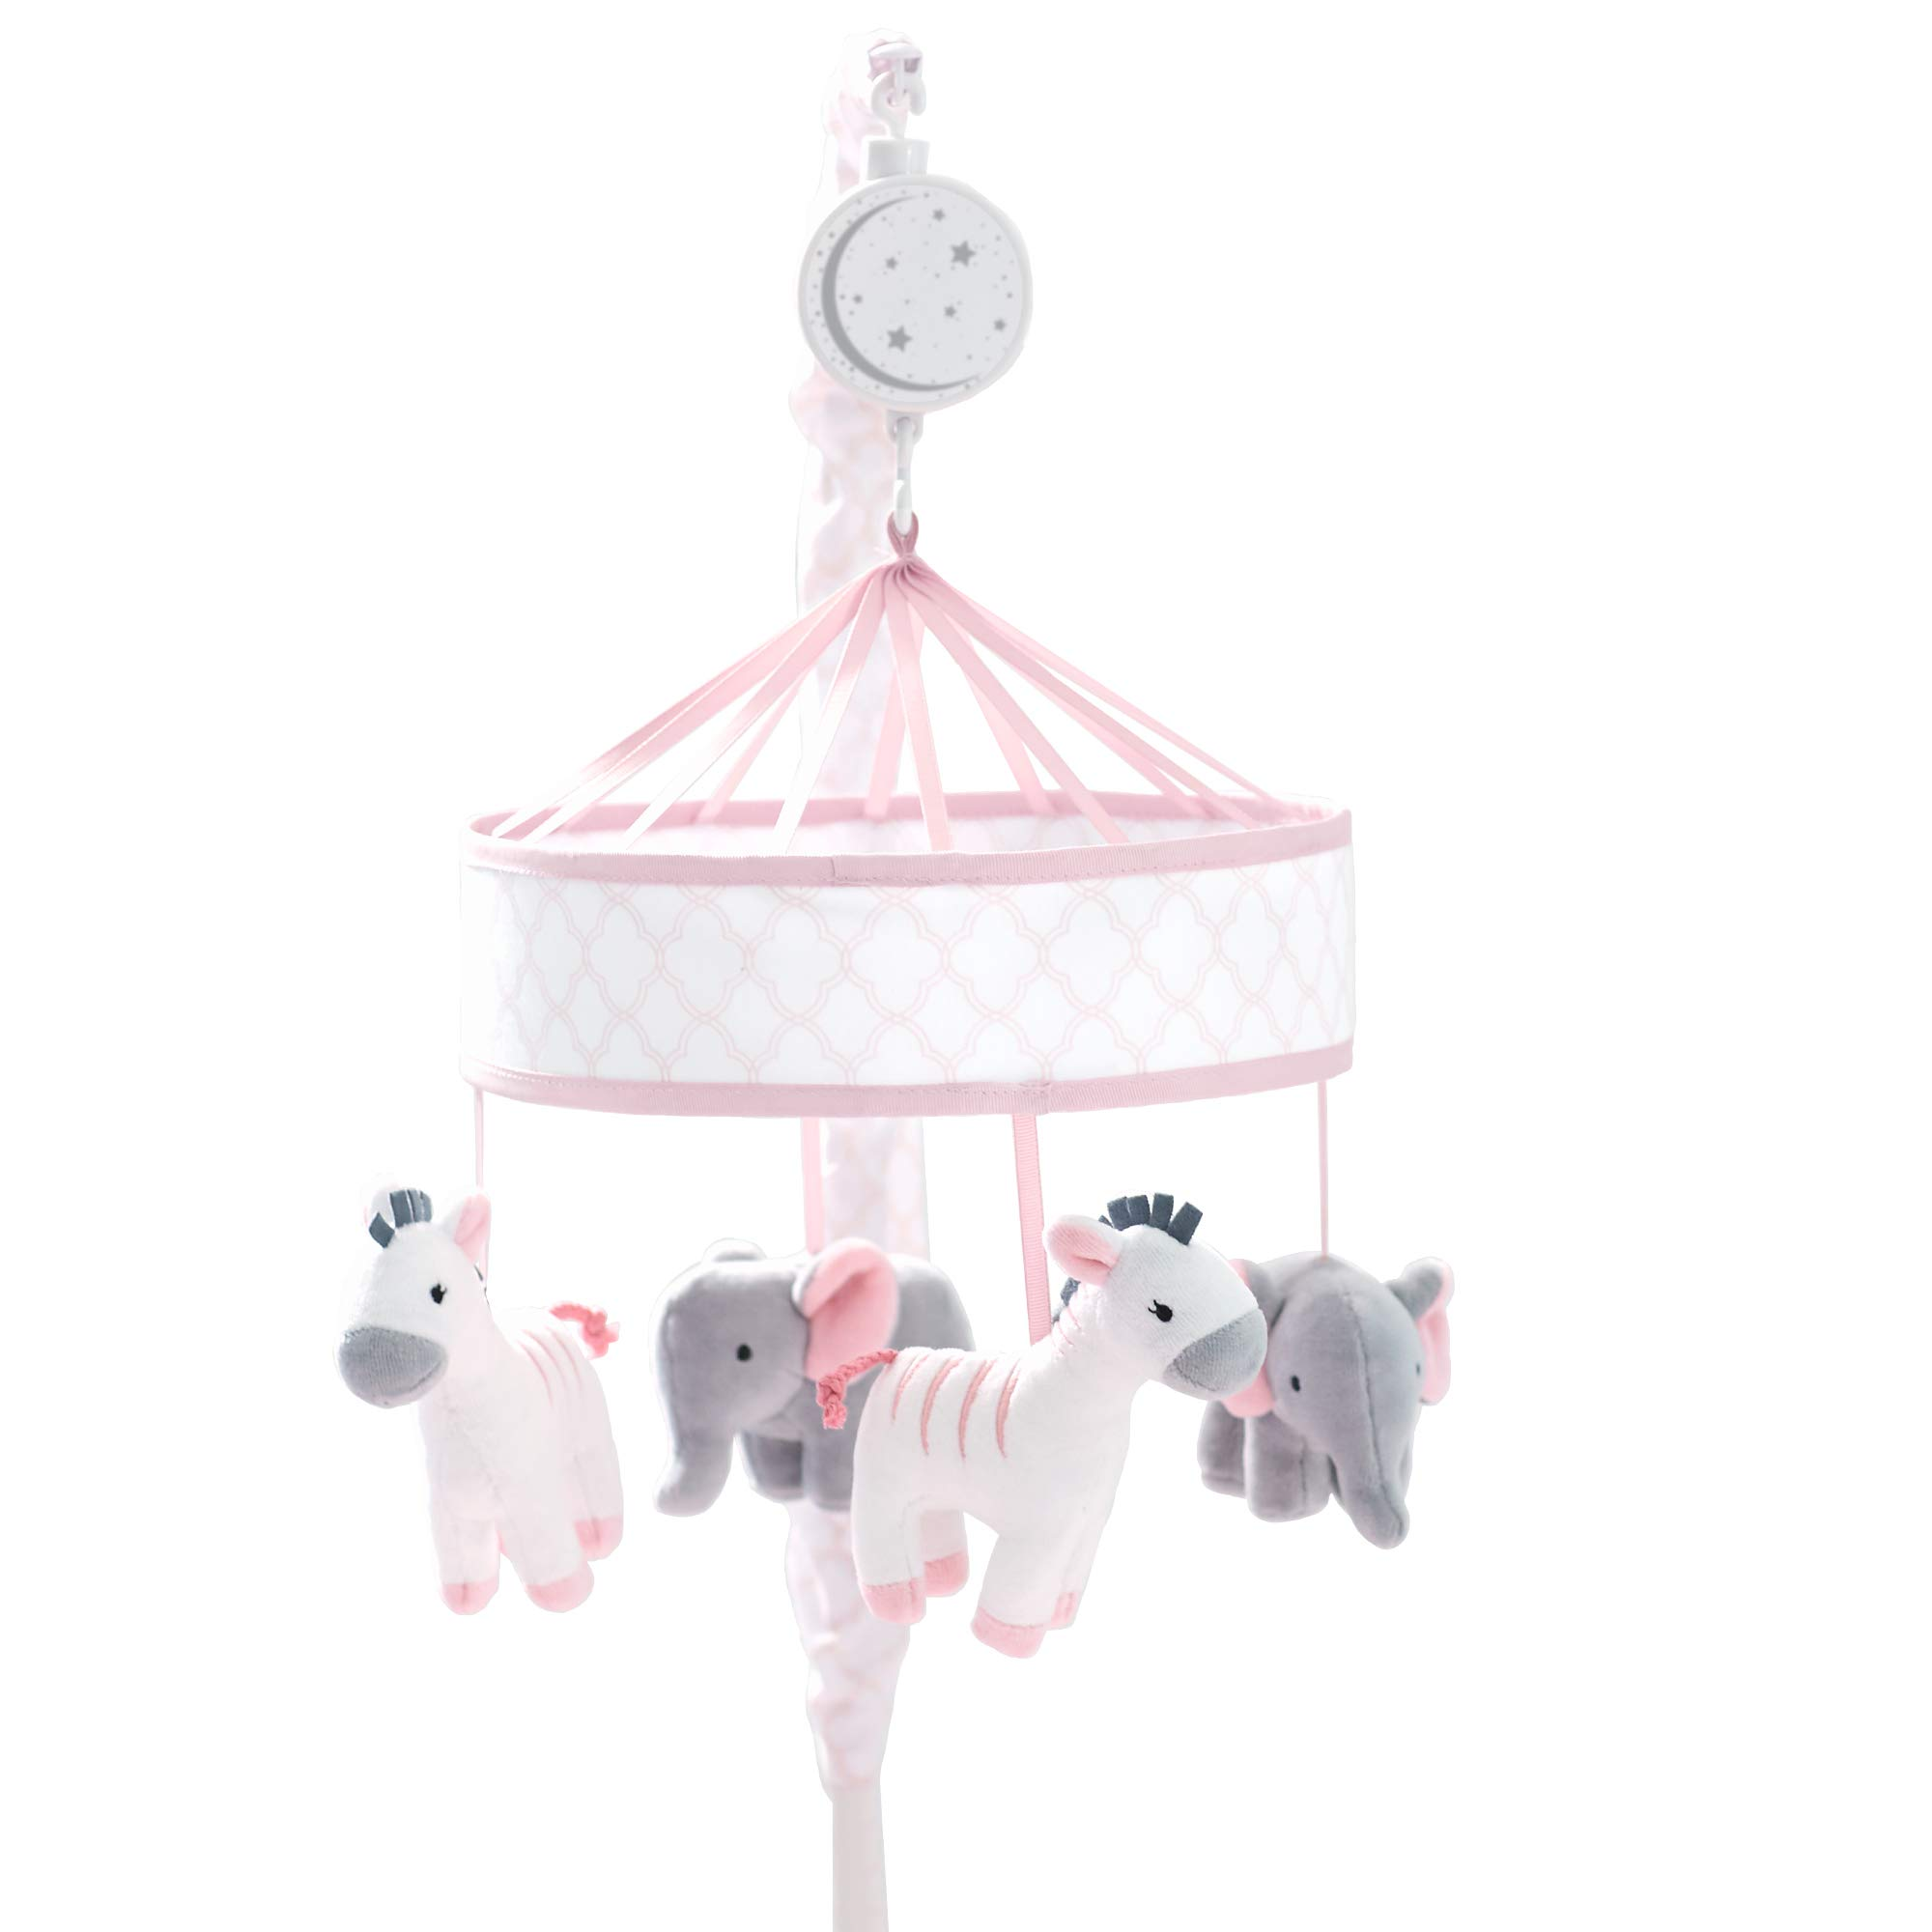 Just Born Dream Musical Mobile, Pink, Grey Giraffe, Elephant, One Size